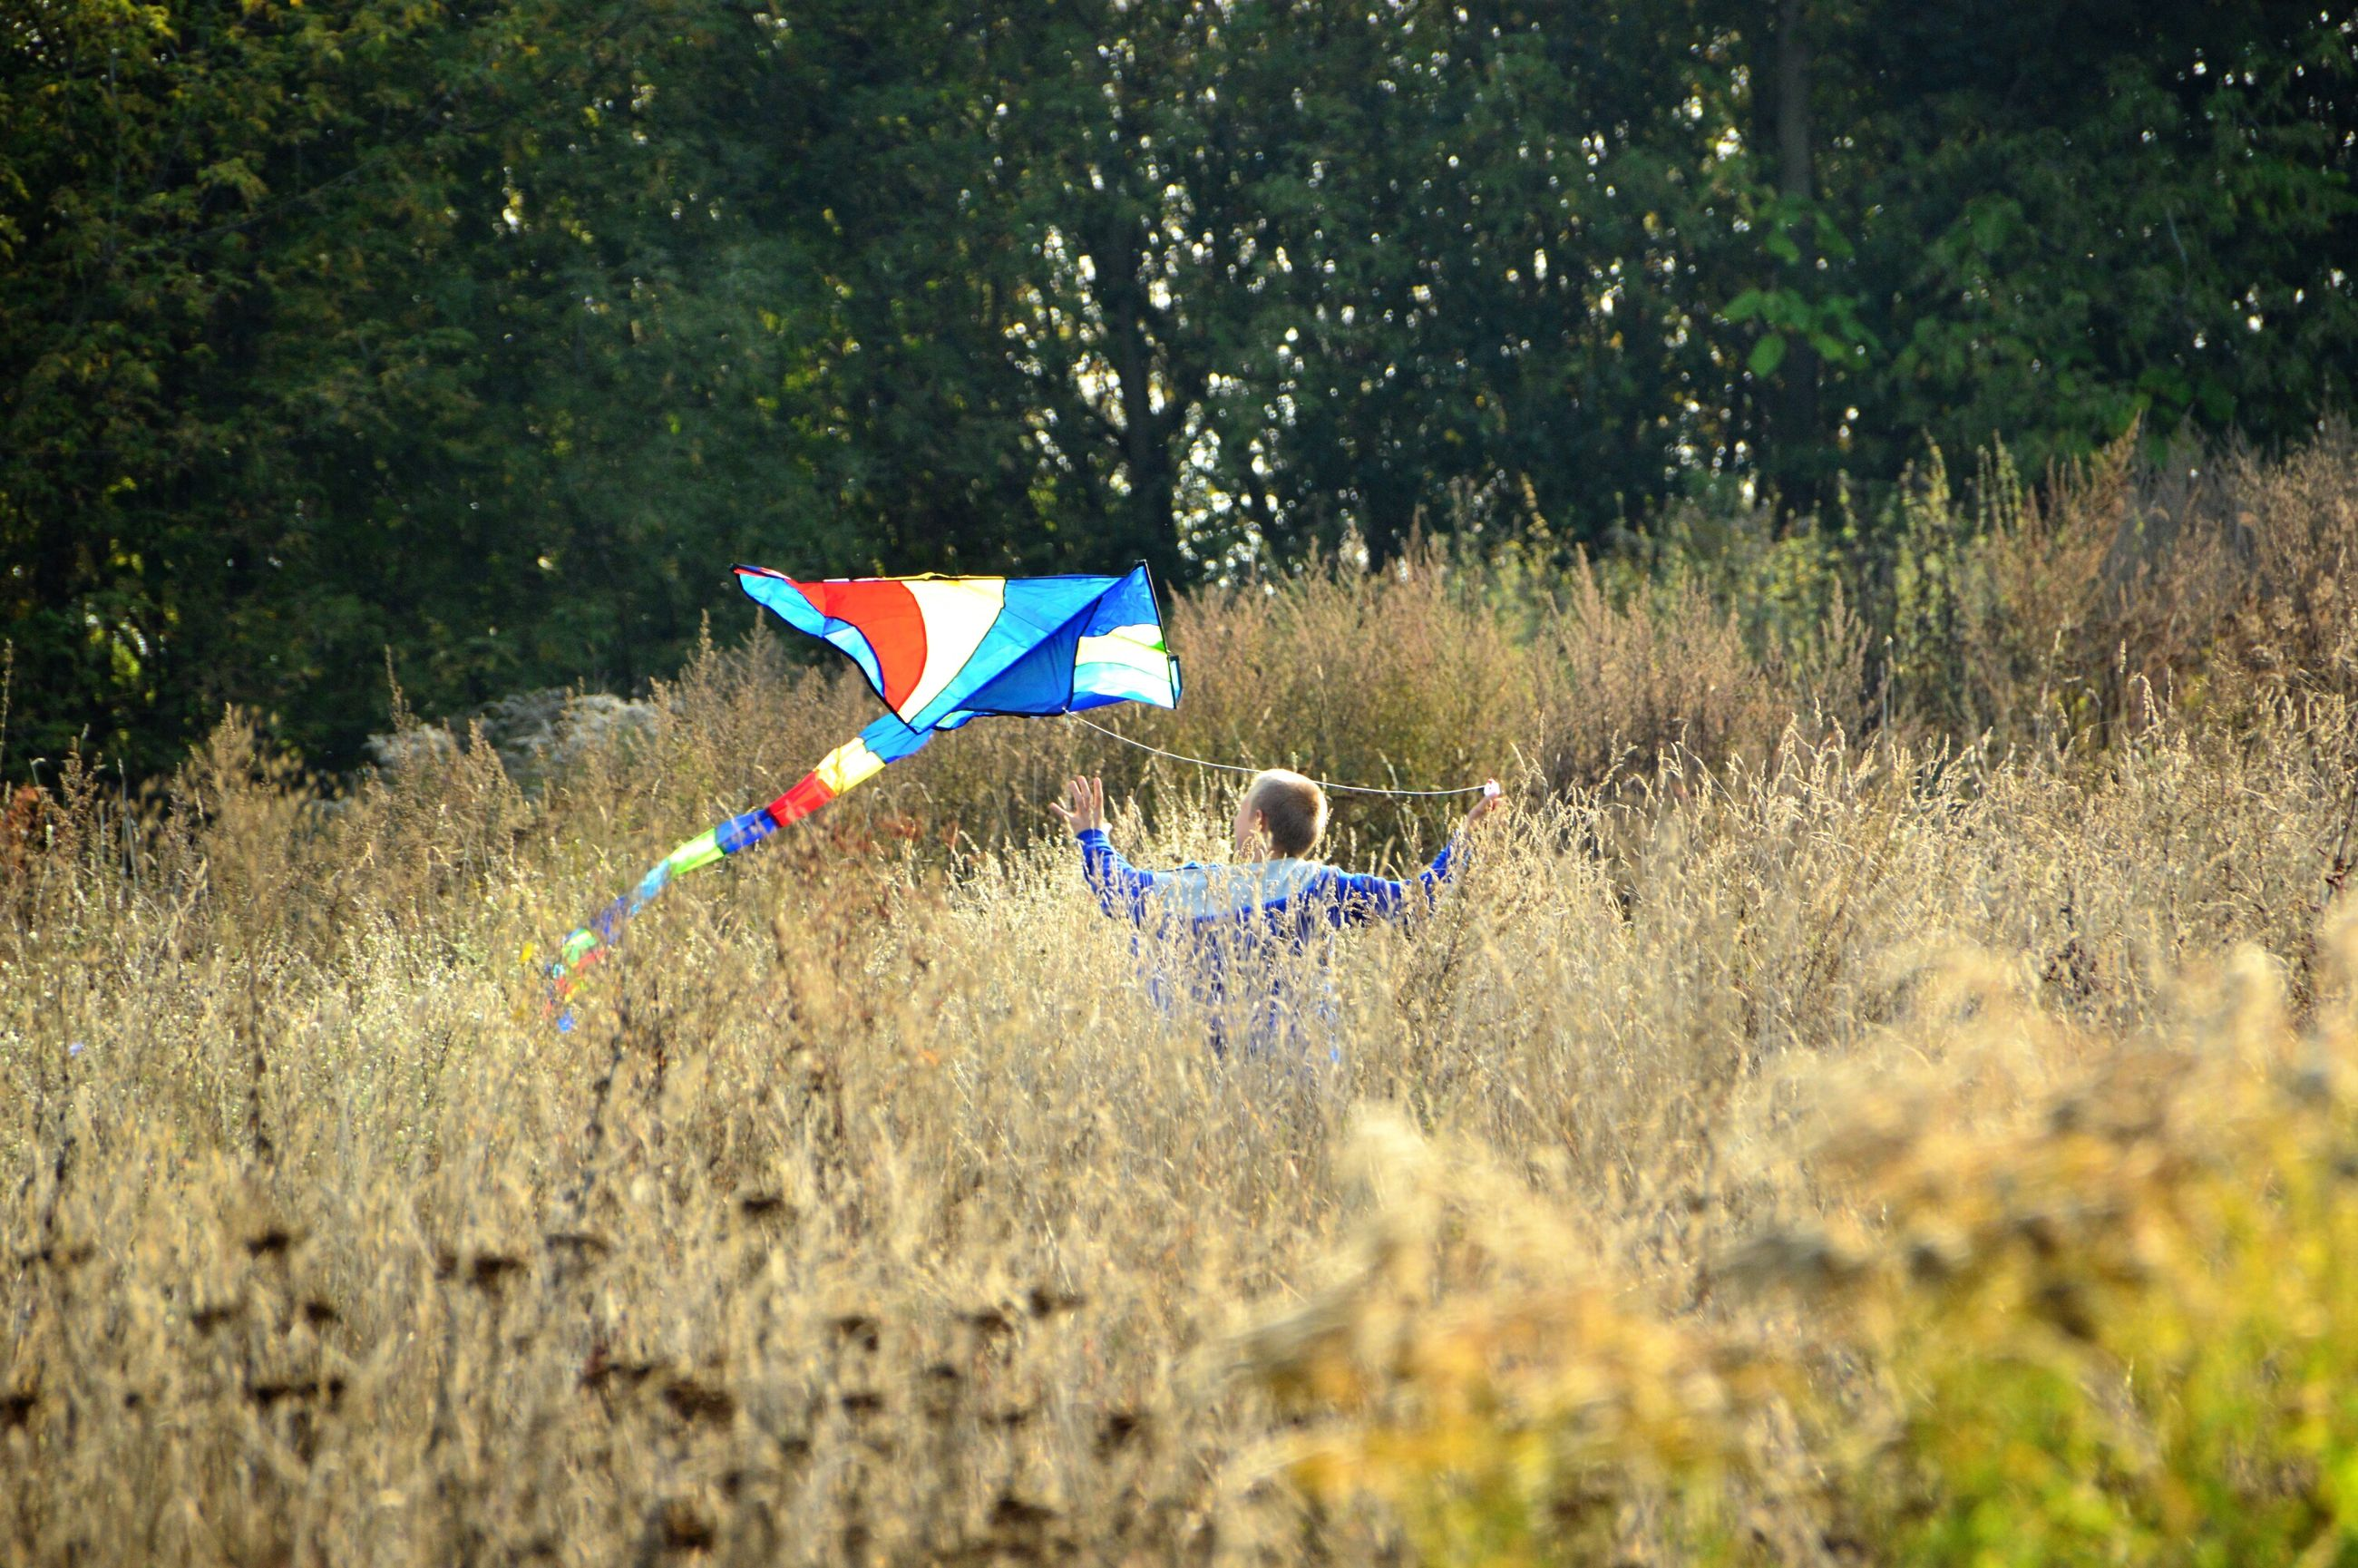 flag, patriotism, identity, national flag, american flag, multi colored, wind, field, flying, celebration, tree, day, mid-air, outdoors, grass, nature, culture, freedom, blue, striped